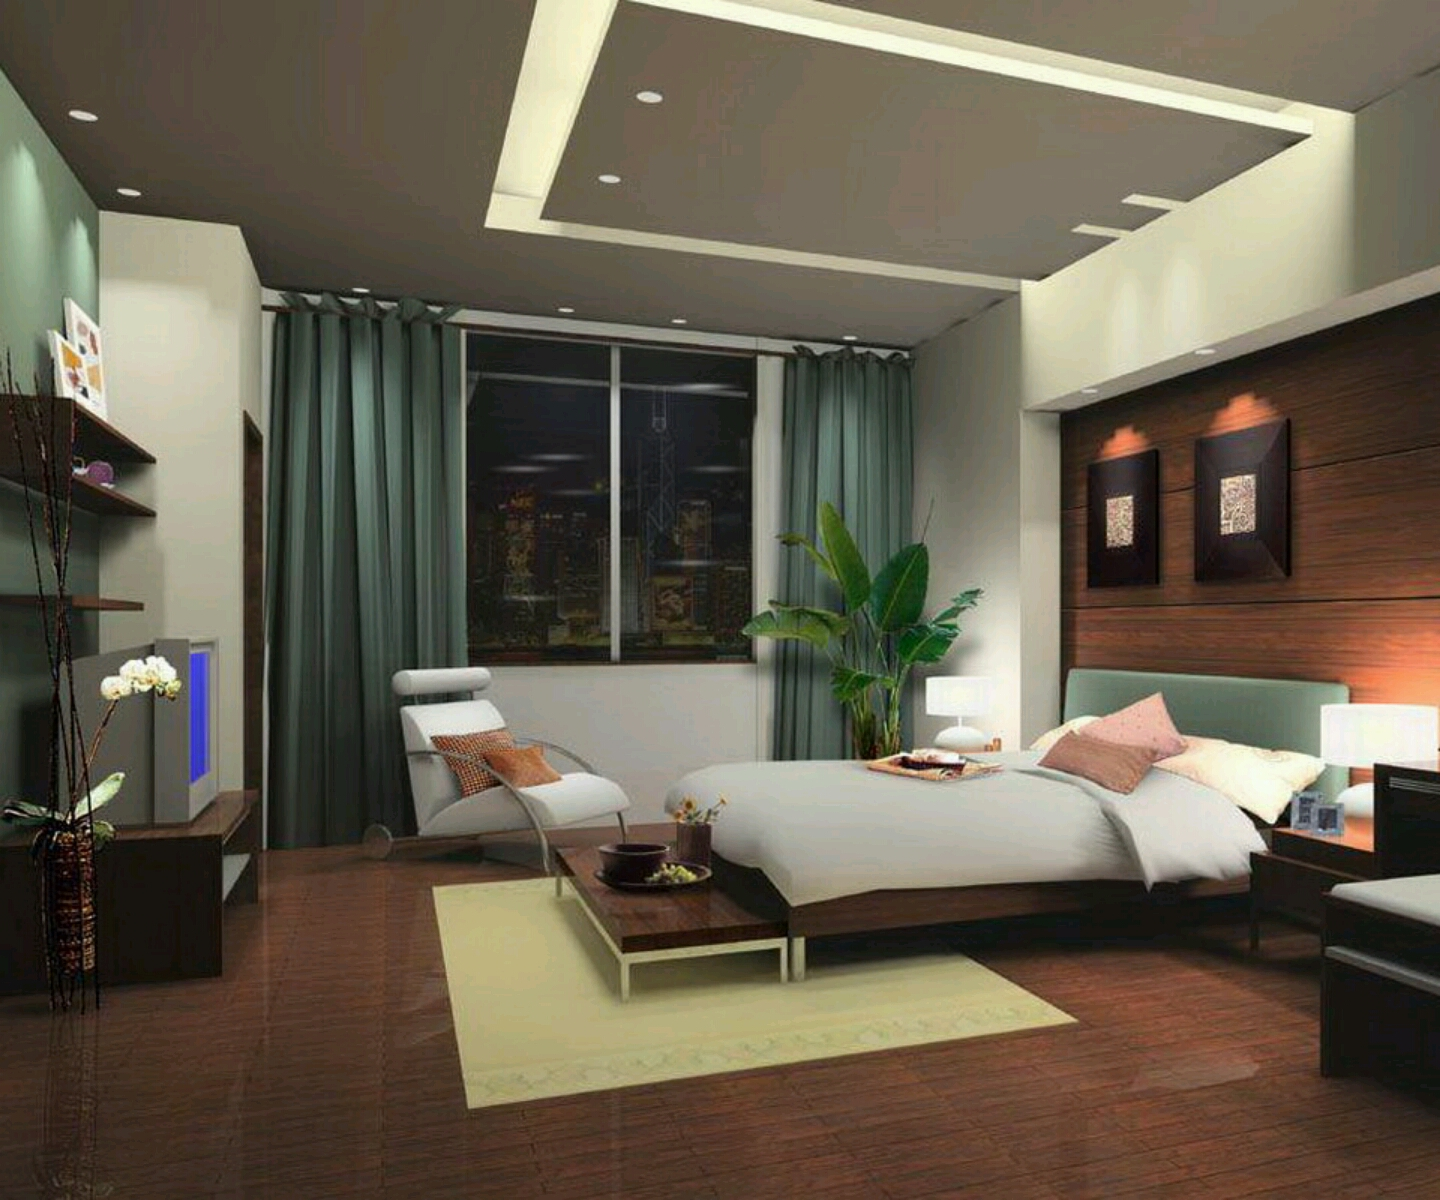 New home designs latest modern bedrooms designs best ideas for Contemporary bedroom ideas